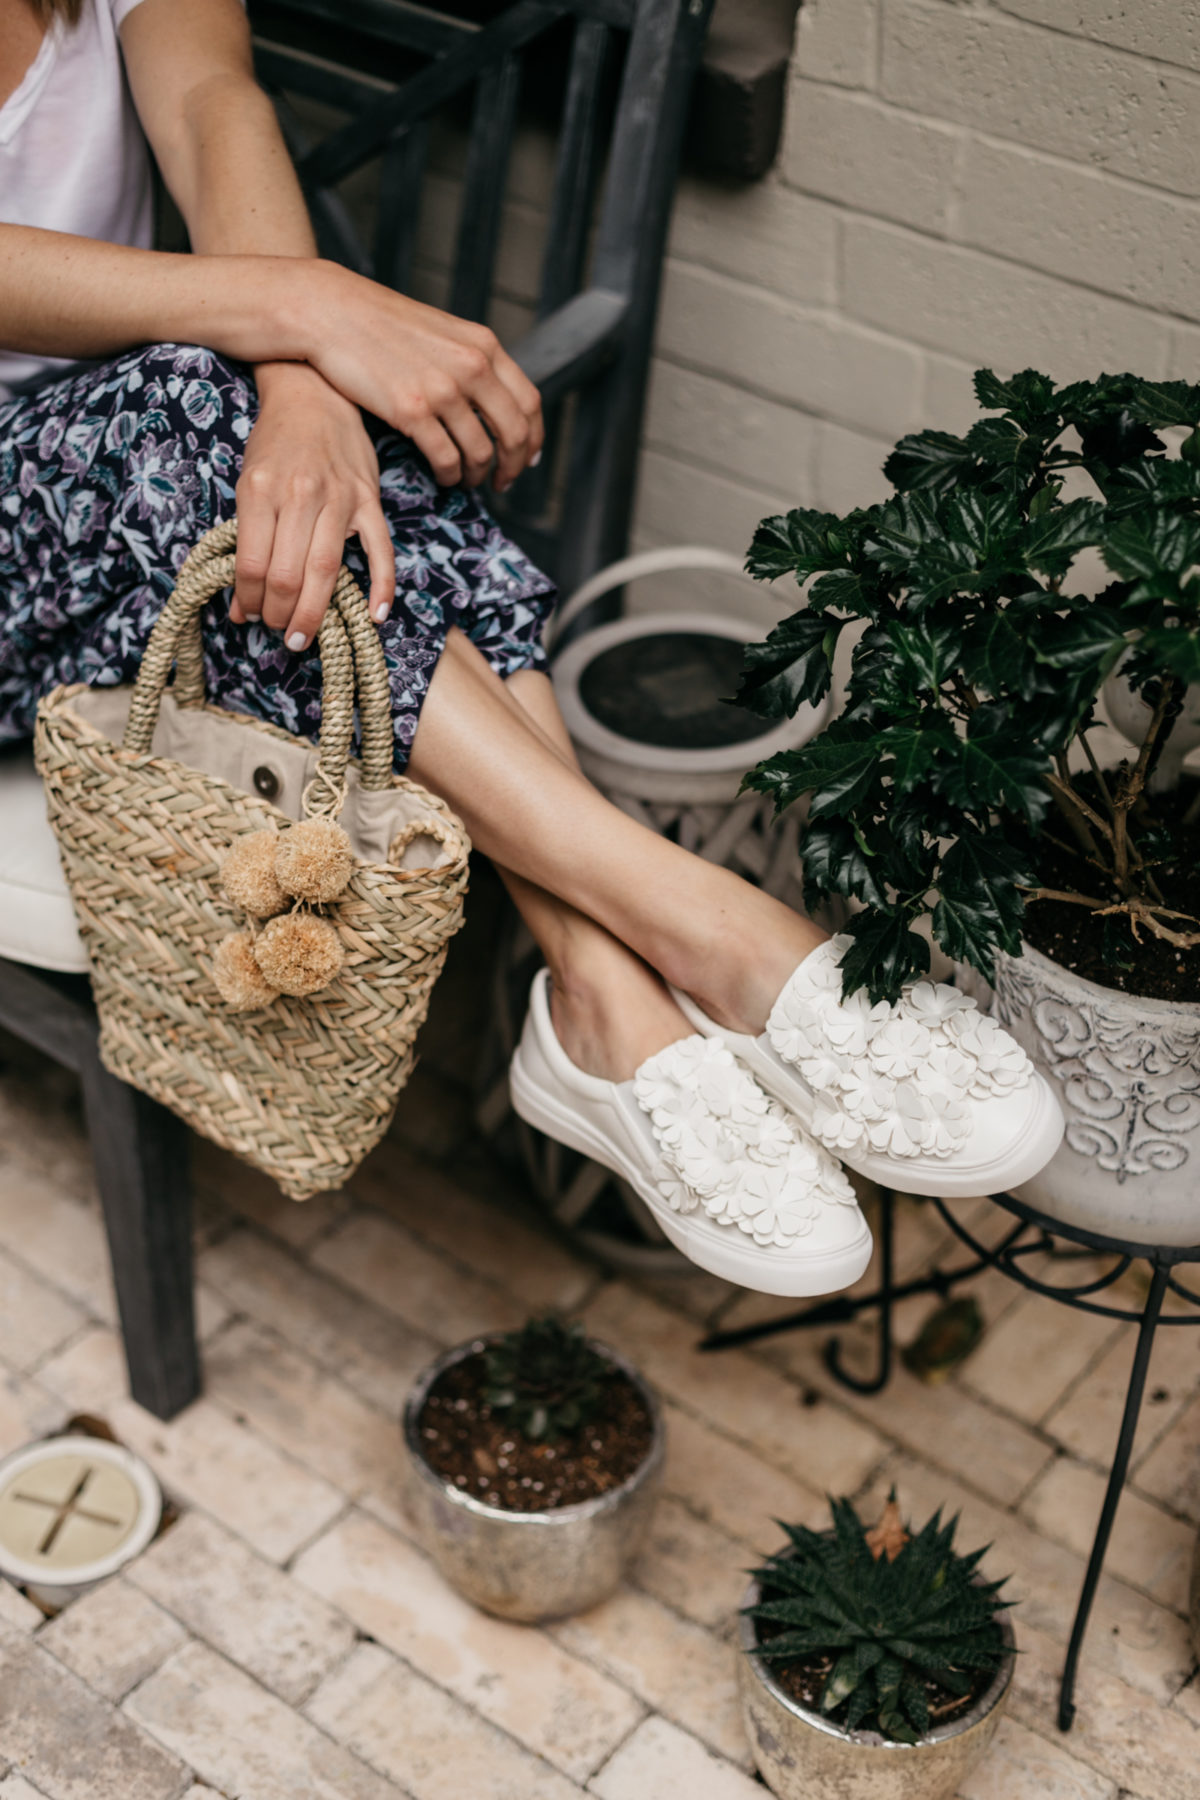 White sneakers and woven bag